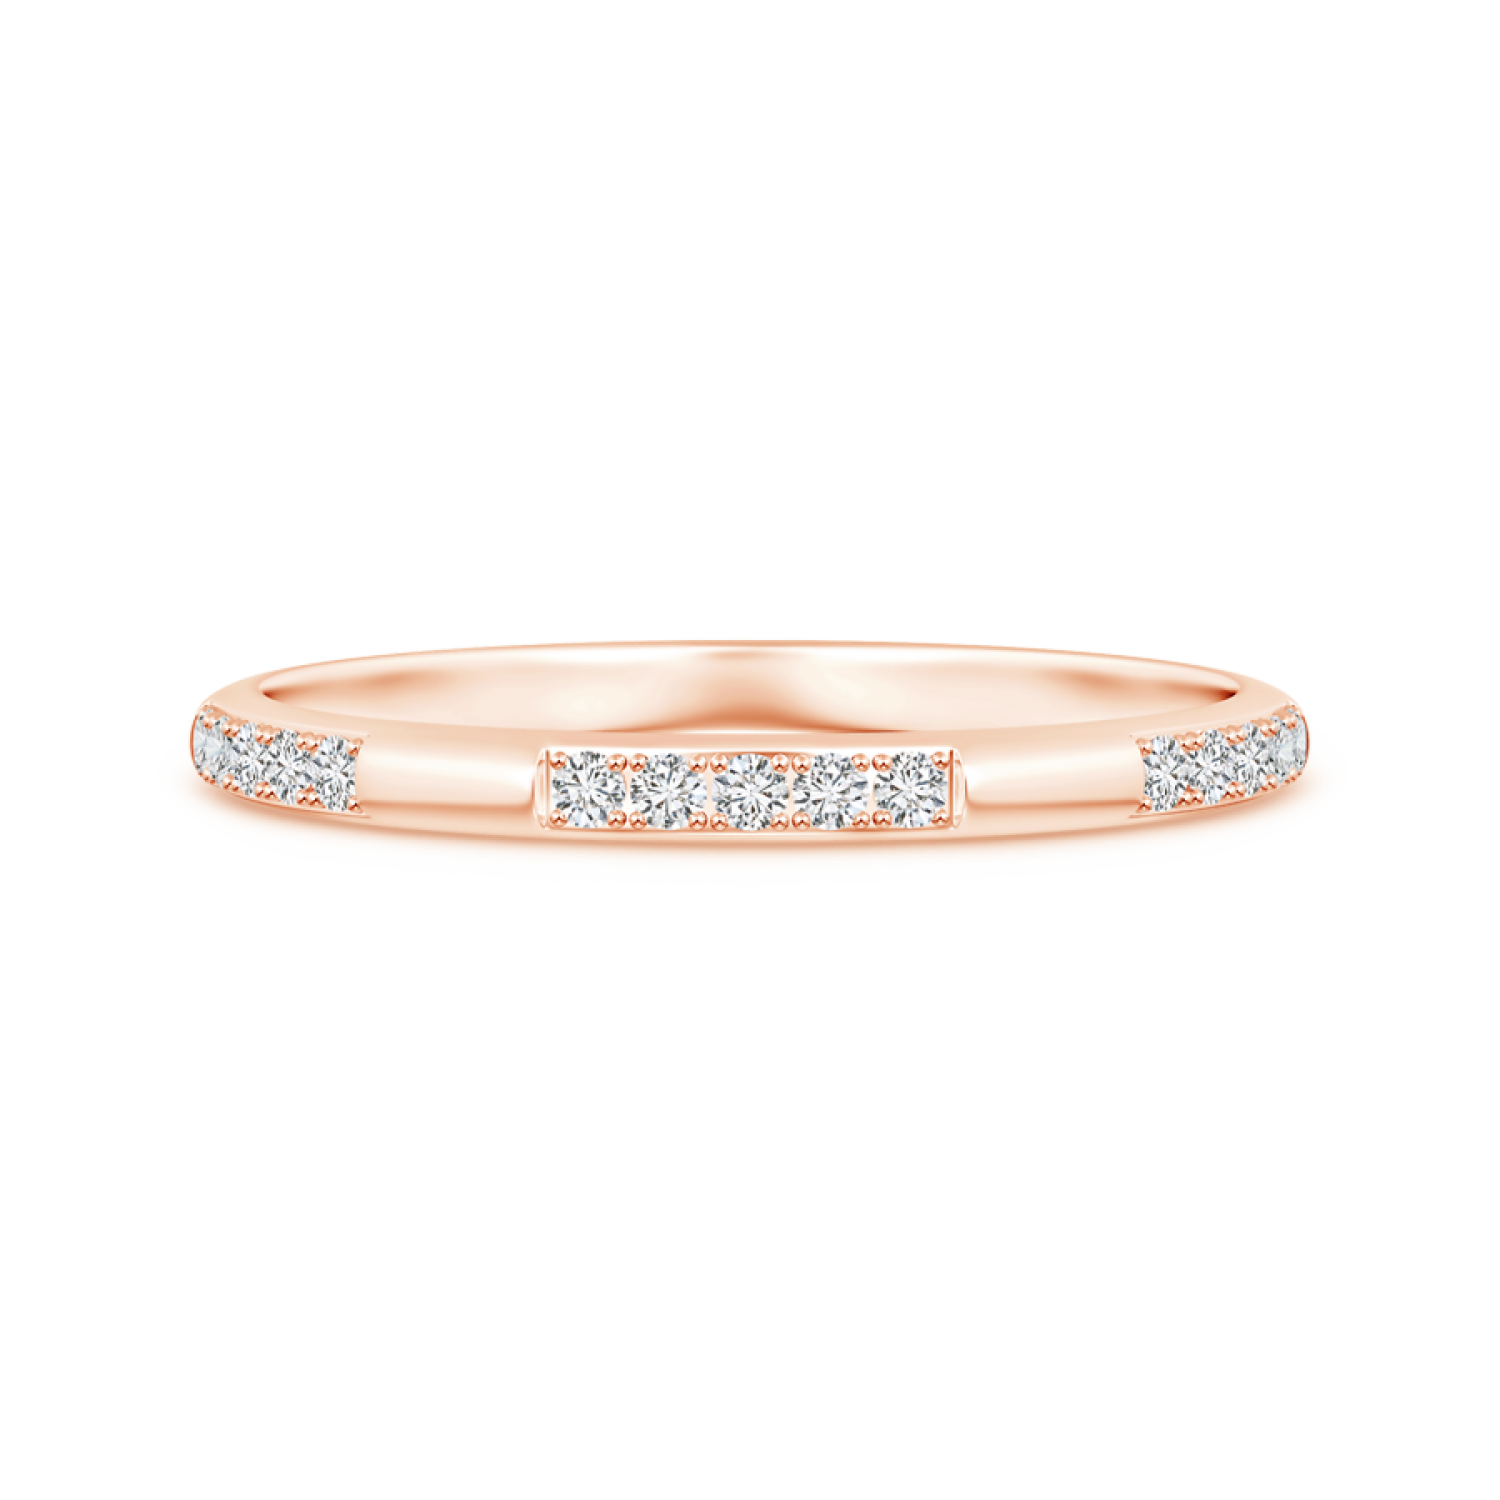 Pave-Set Semi Eternity Lab Grown Diamond Wedding Band for Women - Main Image